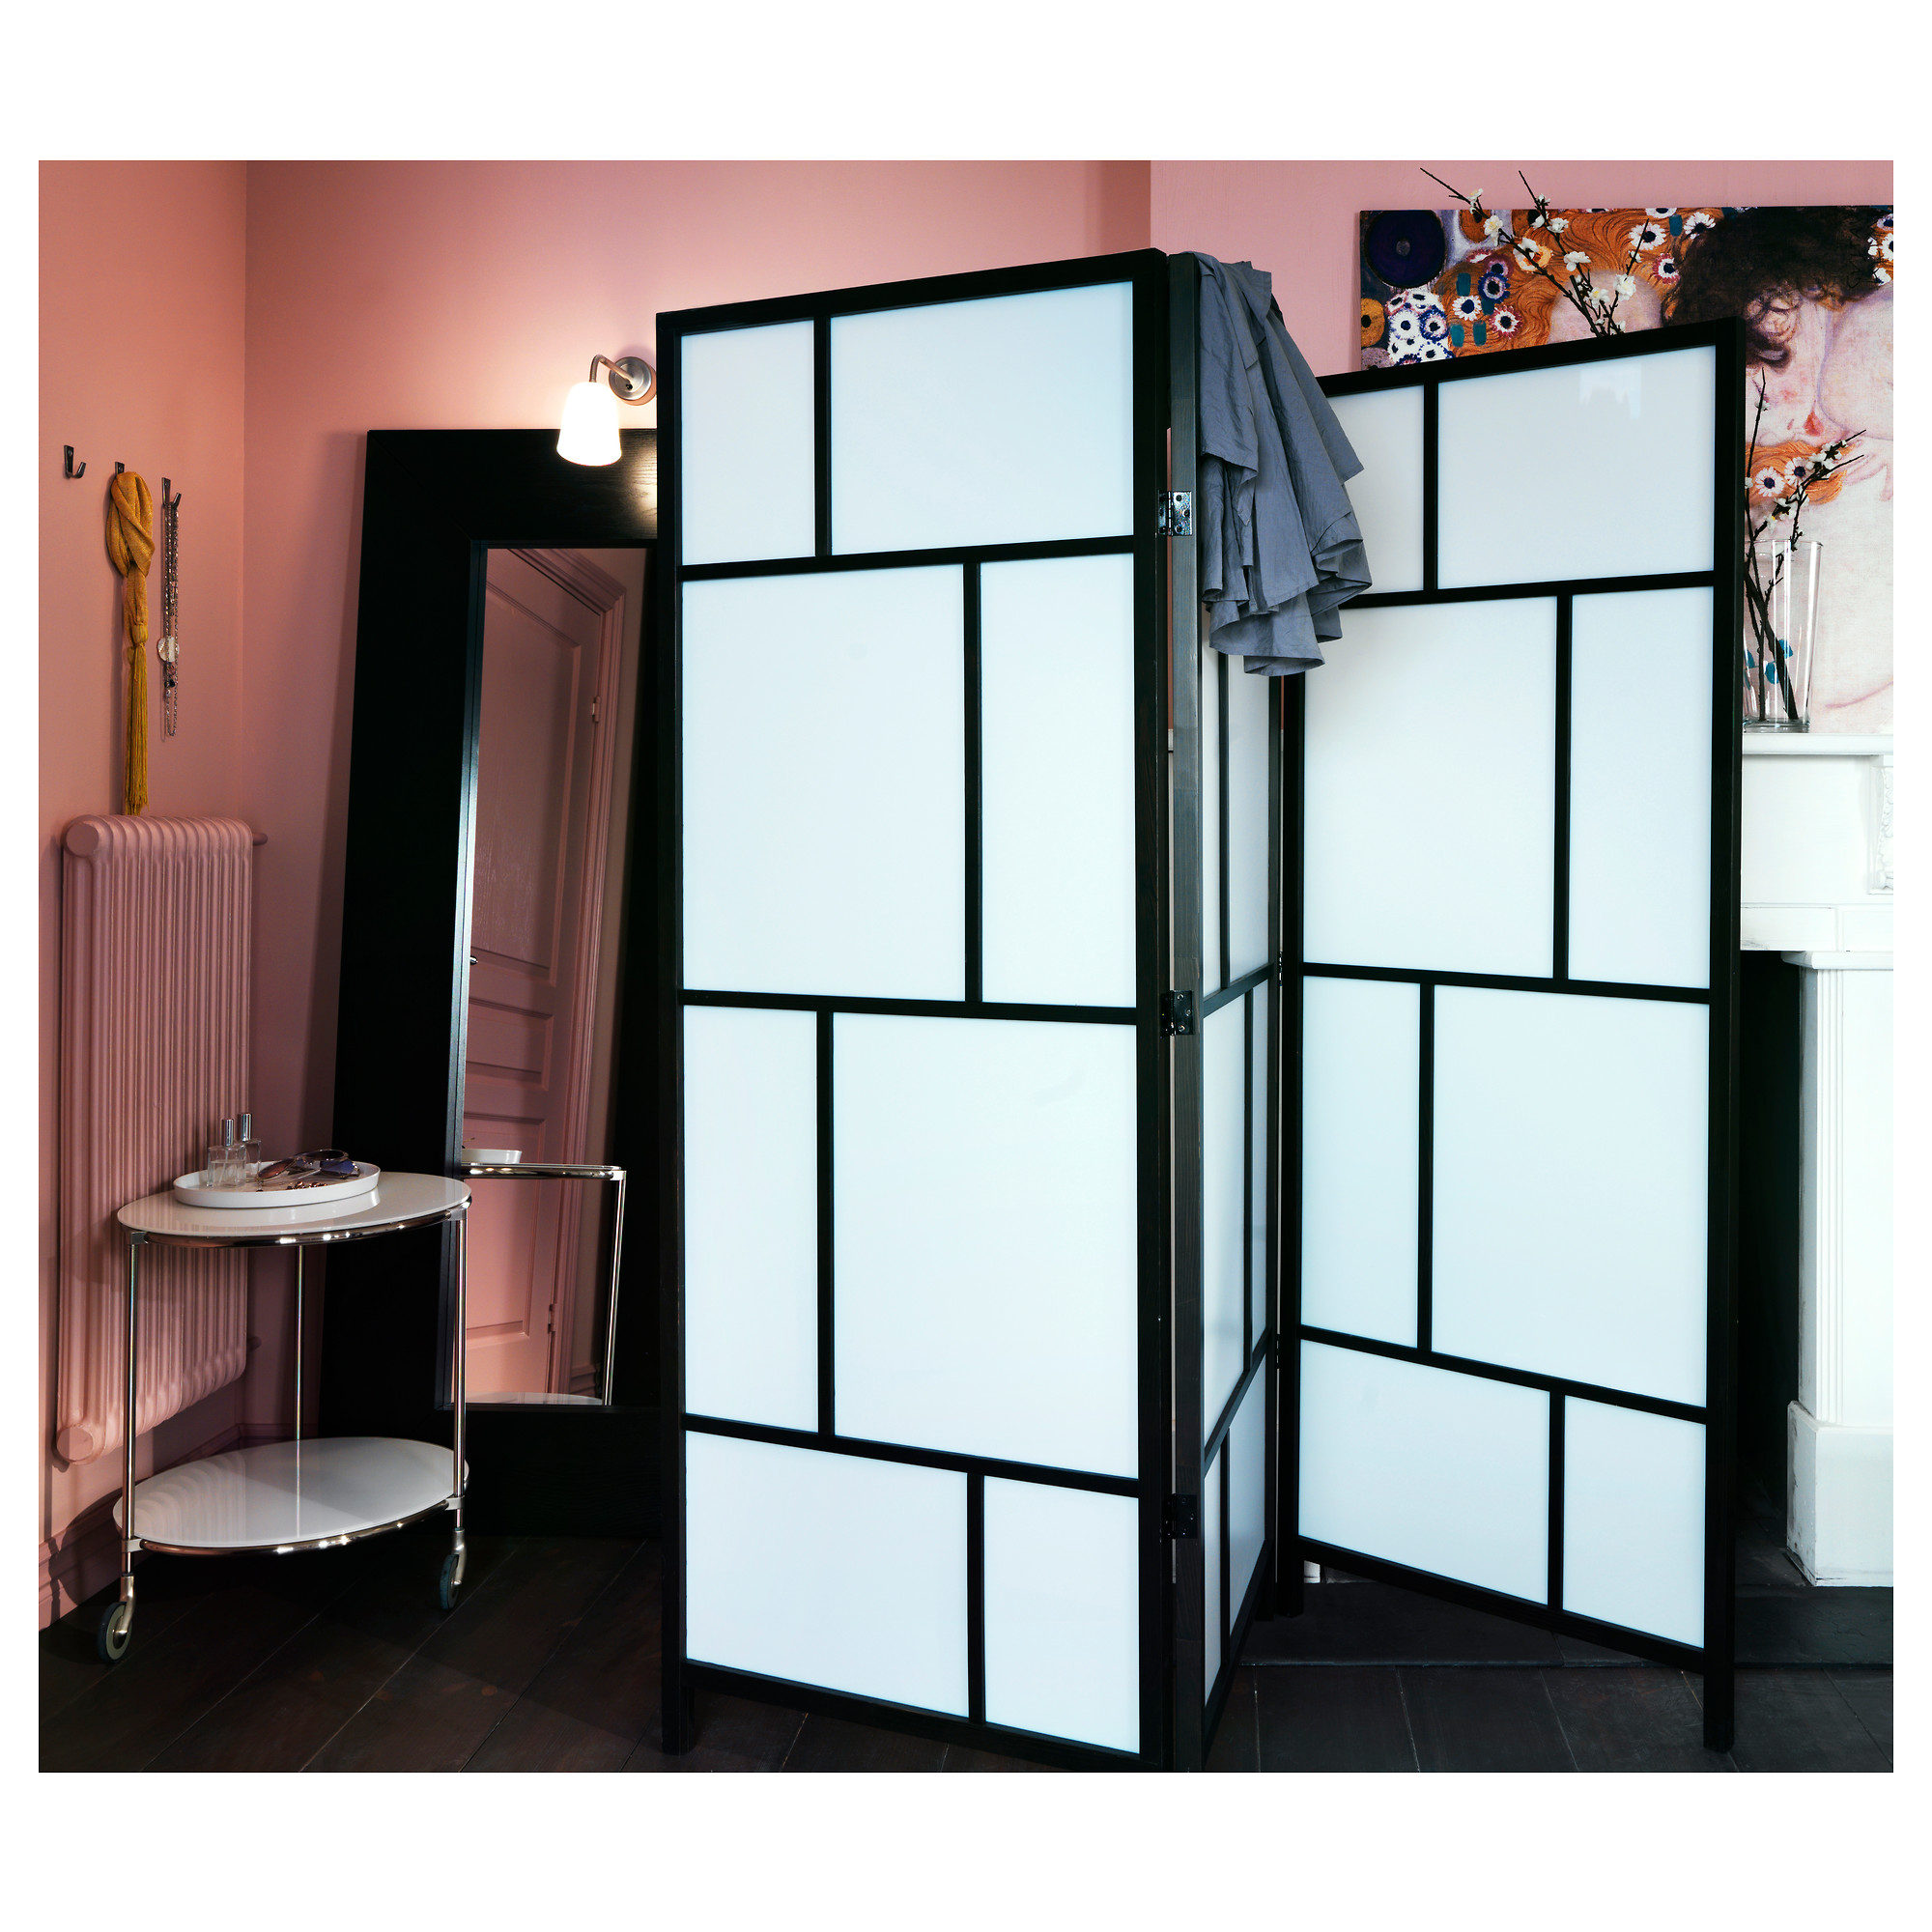 Soundproof Room Dividers | Room Separators Ikea | Tri Fold Room Divider